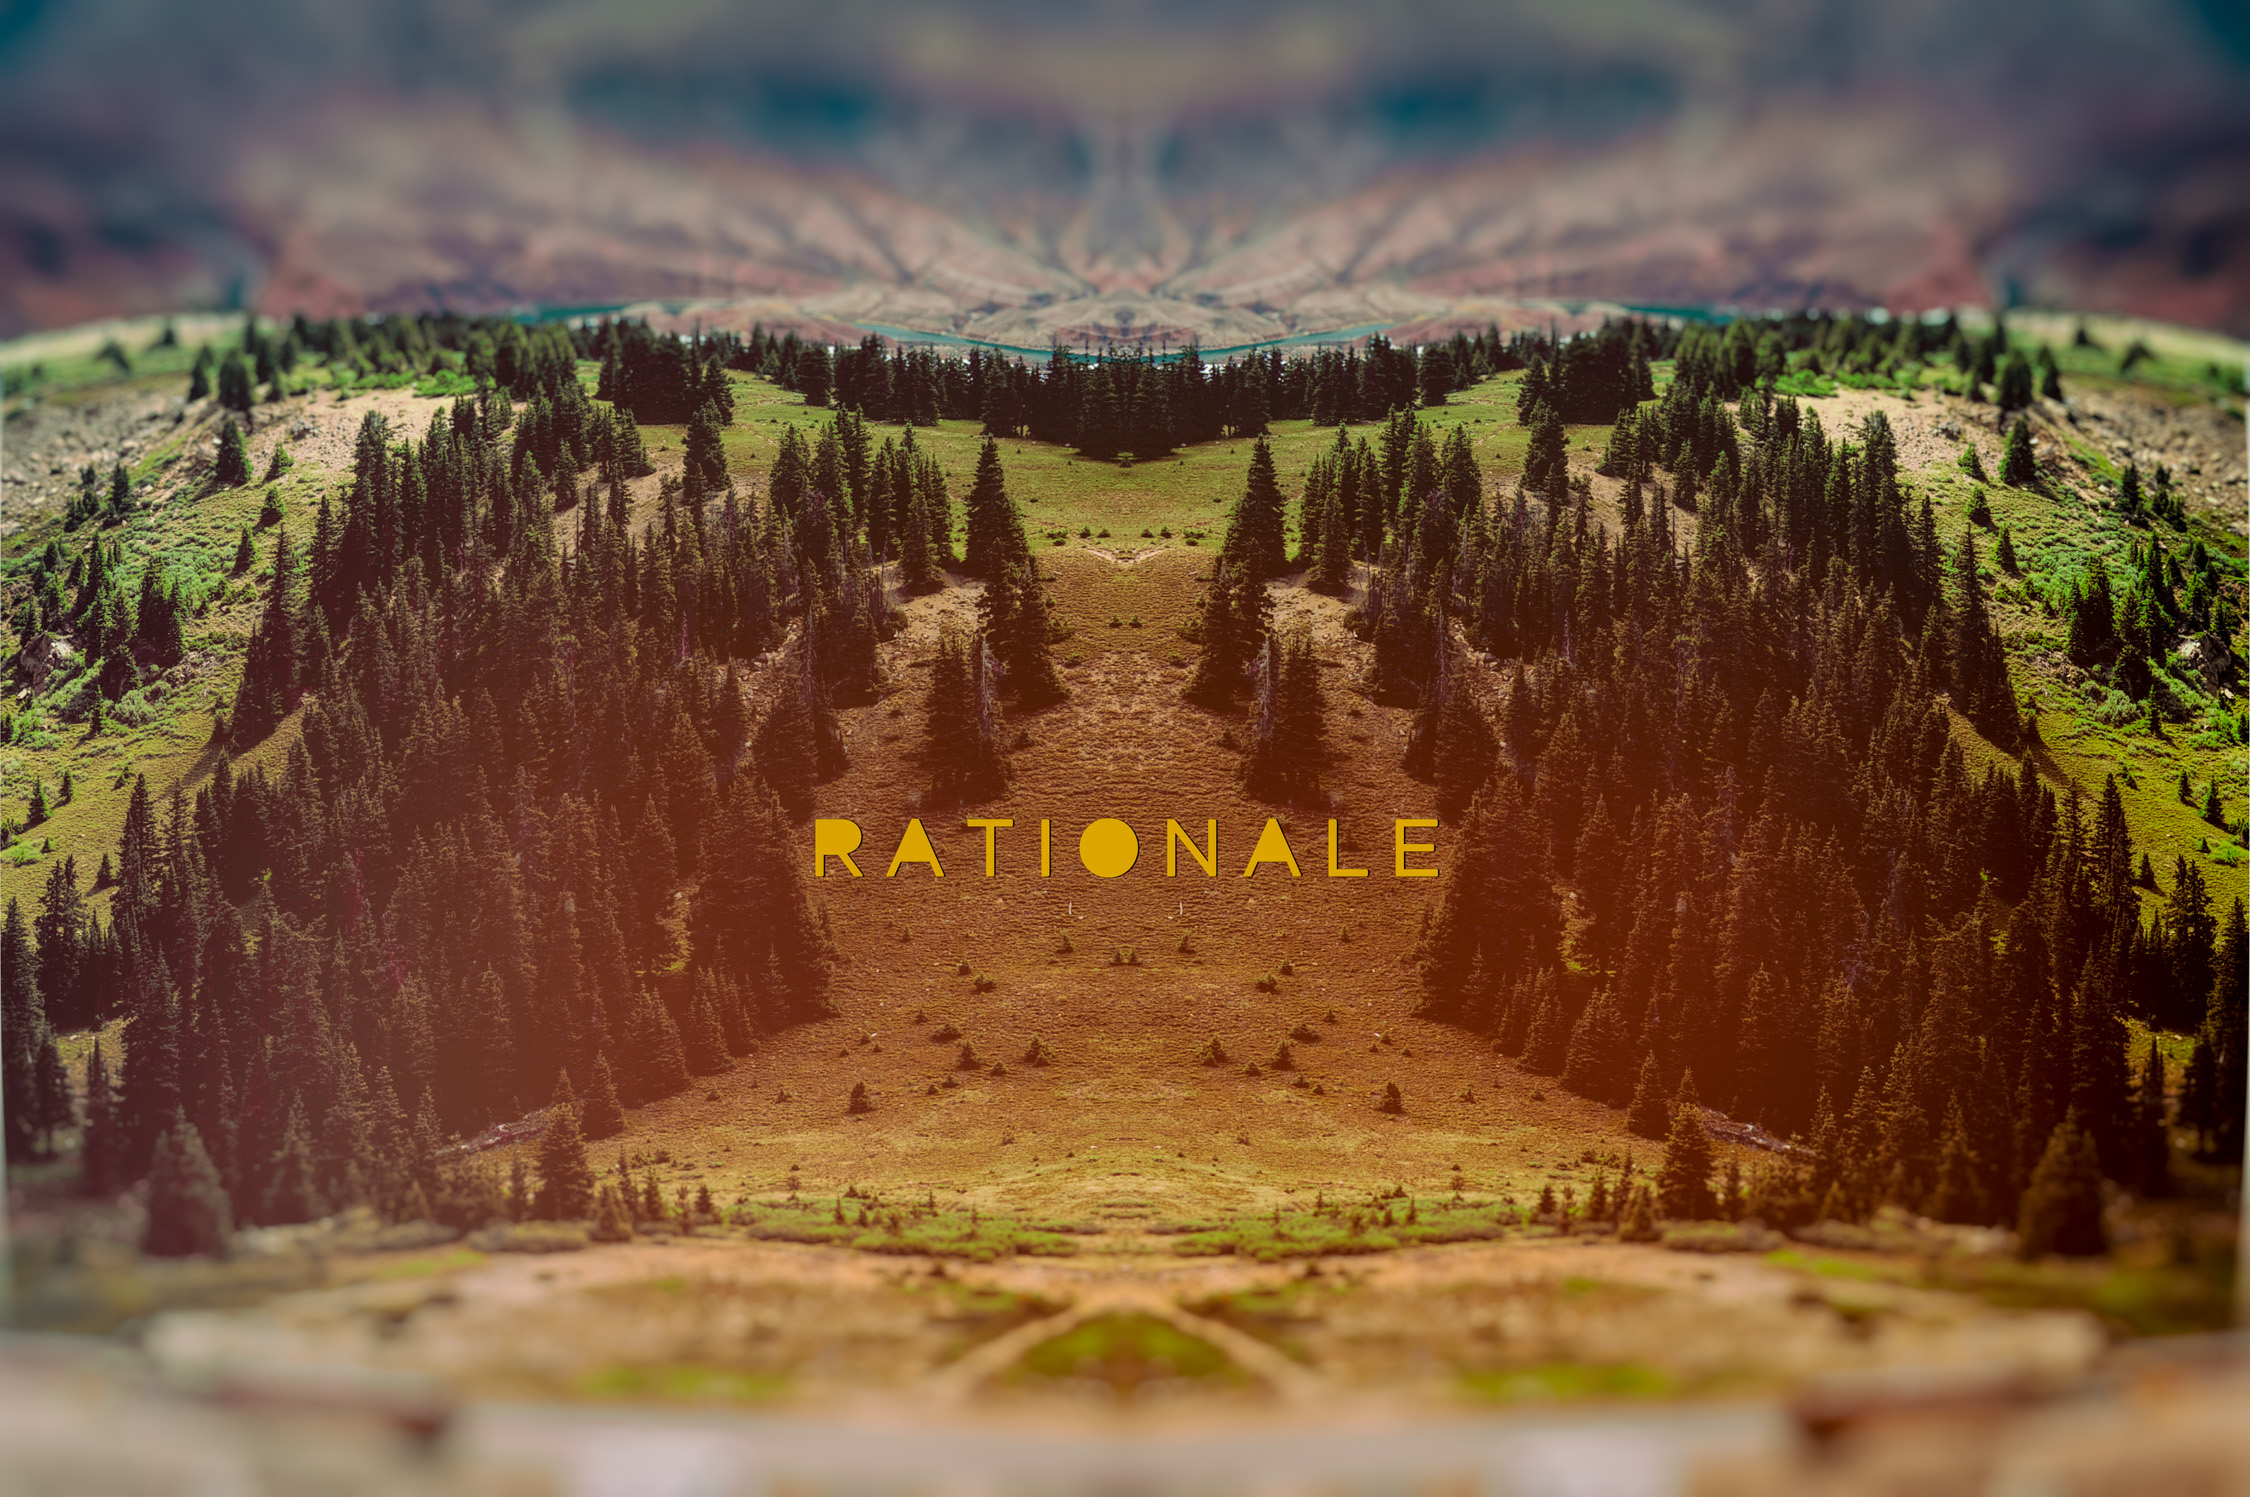 Rationale artwork-one of multiple key art pieces